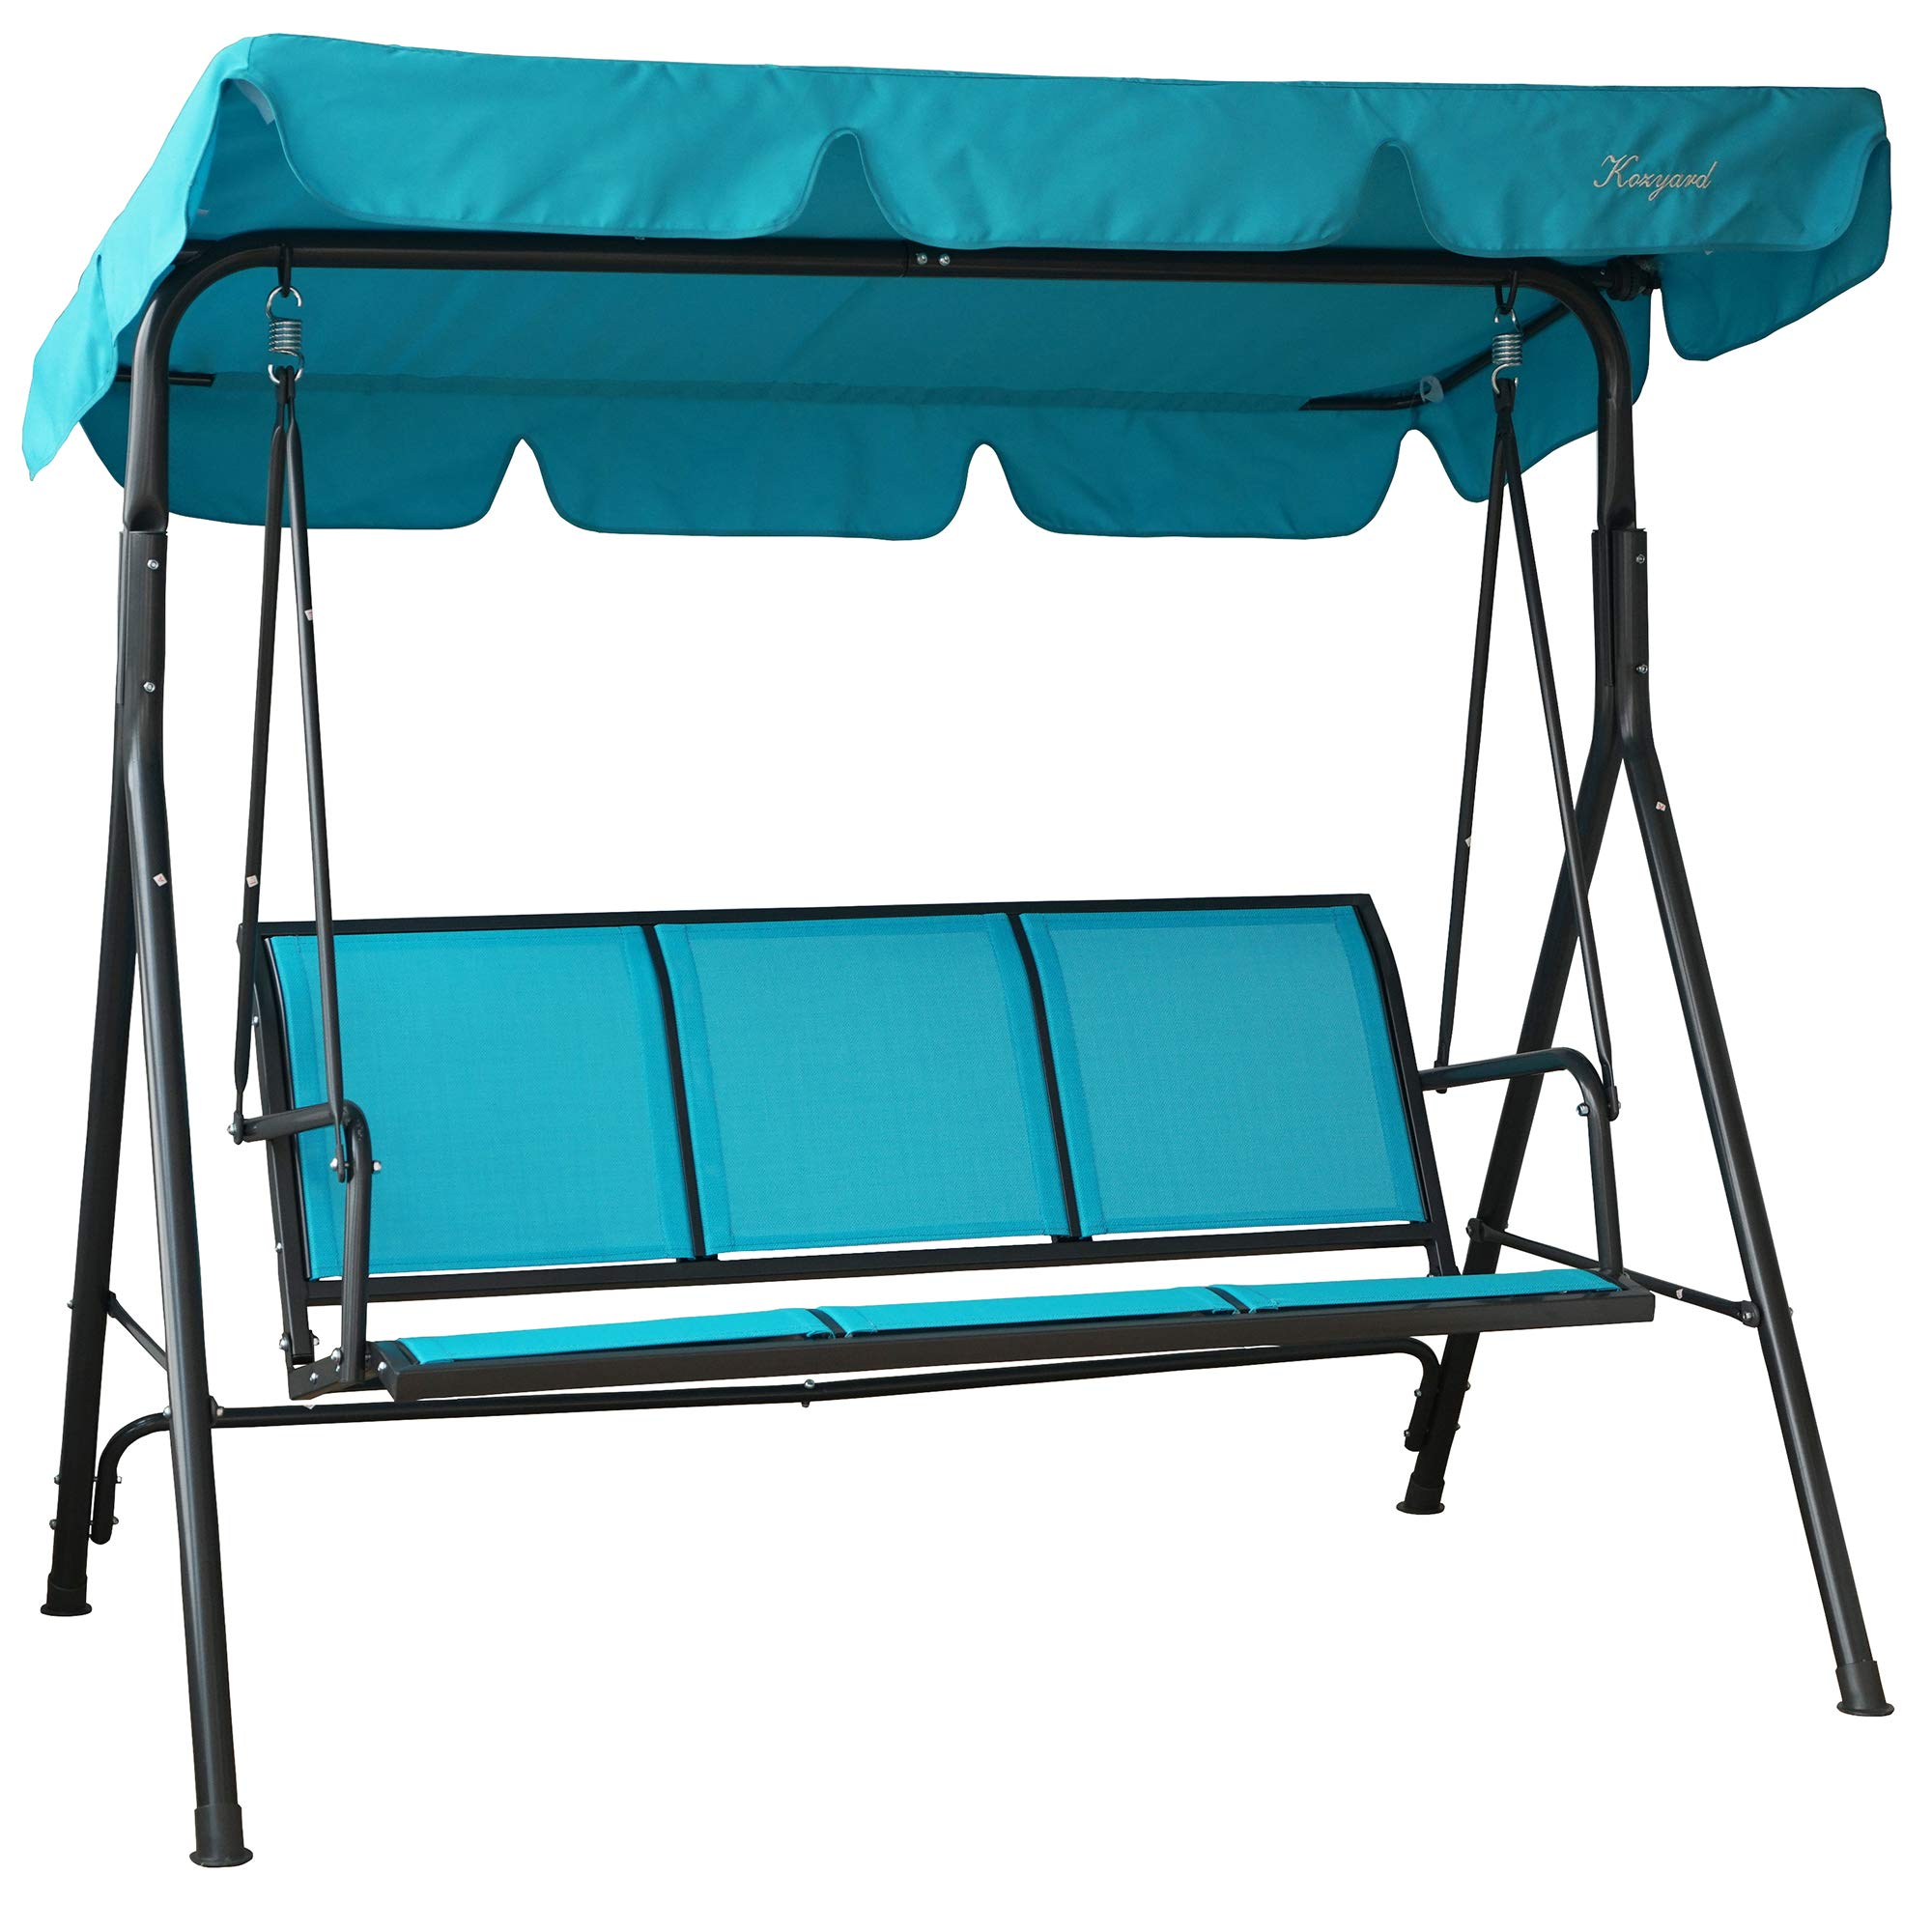 Kozyard Belle 3 Person Outdoor Patio Swing with Strong Weather Resistant Powder Coated Steel Frame and Textilence Seats by Kozyard